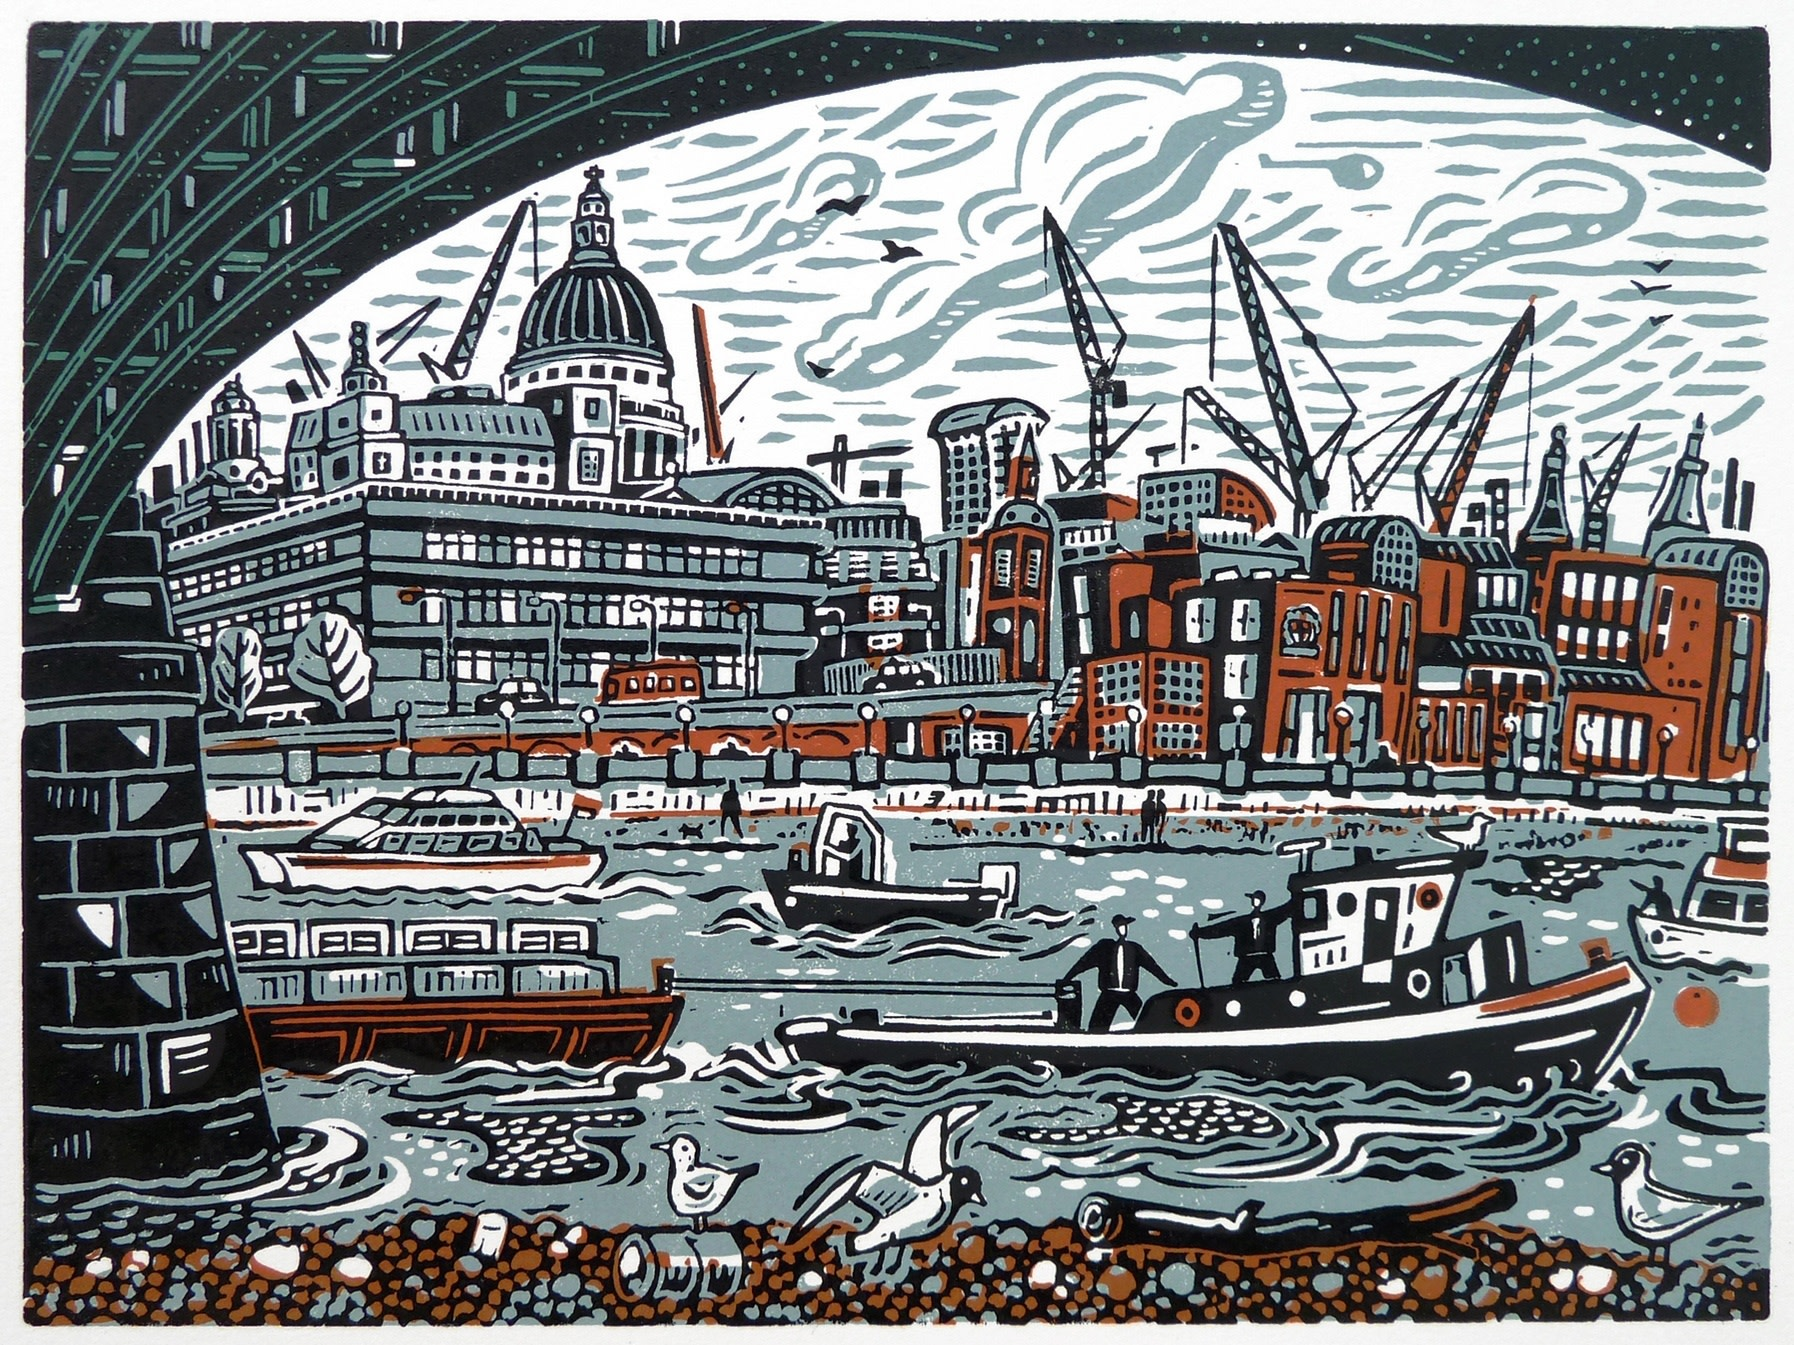 "<span class=""link fancybox-details-link""><a href=""/exhibitions/17/works/image_standalone628/"">View Detail Page</a></span><p><strong>Mick Armson</strong></p><p>Under Blackfriars Bridge</p><p>linocut, ed of 75</p><p>47 x 41cm</p><p>£275 framed</p><p>£175 unframed</p>"